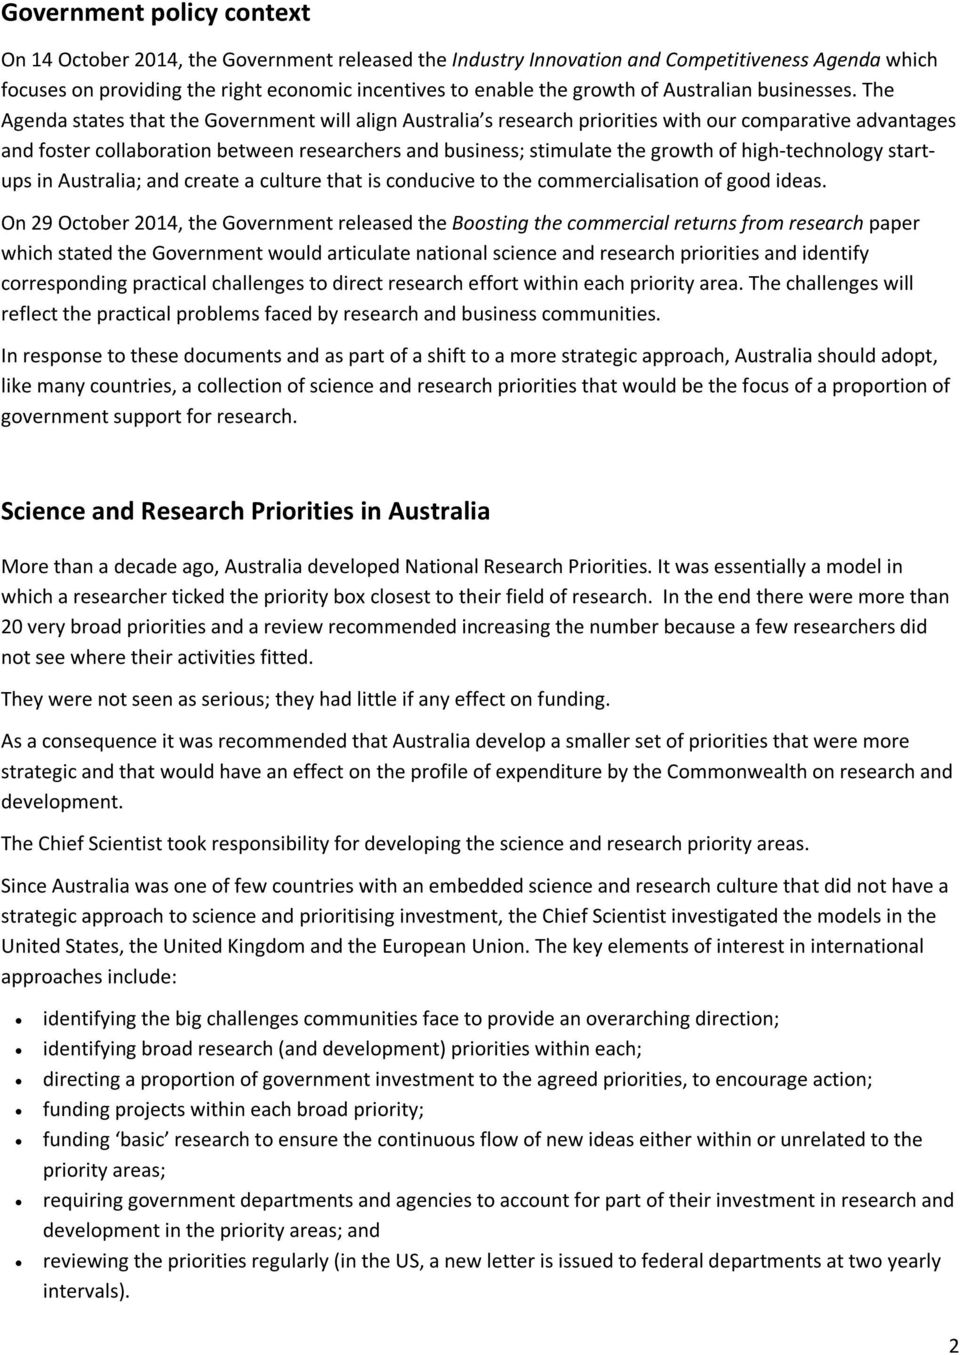 The Agenda states that the Government will align Australia s research priorities with our comparative advantages and foster collaboration between researchers and business; stimulate the growth of